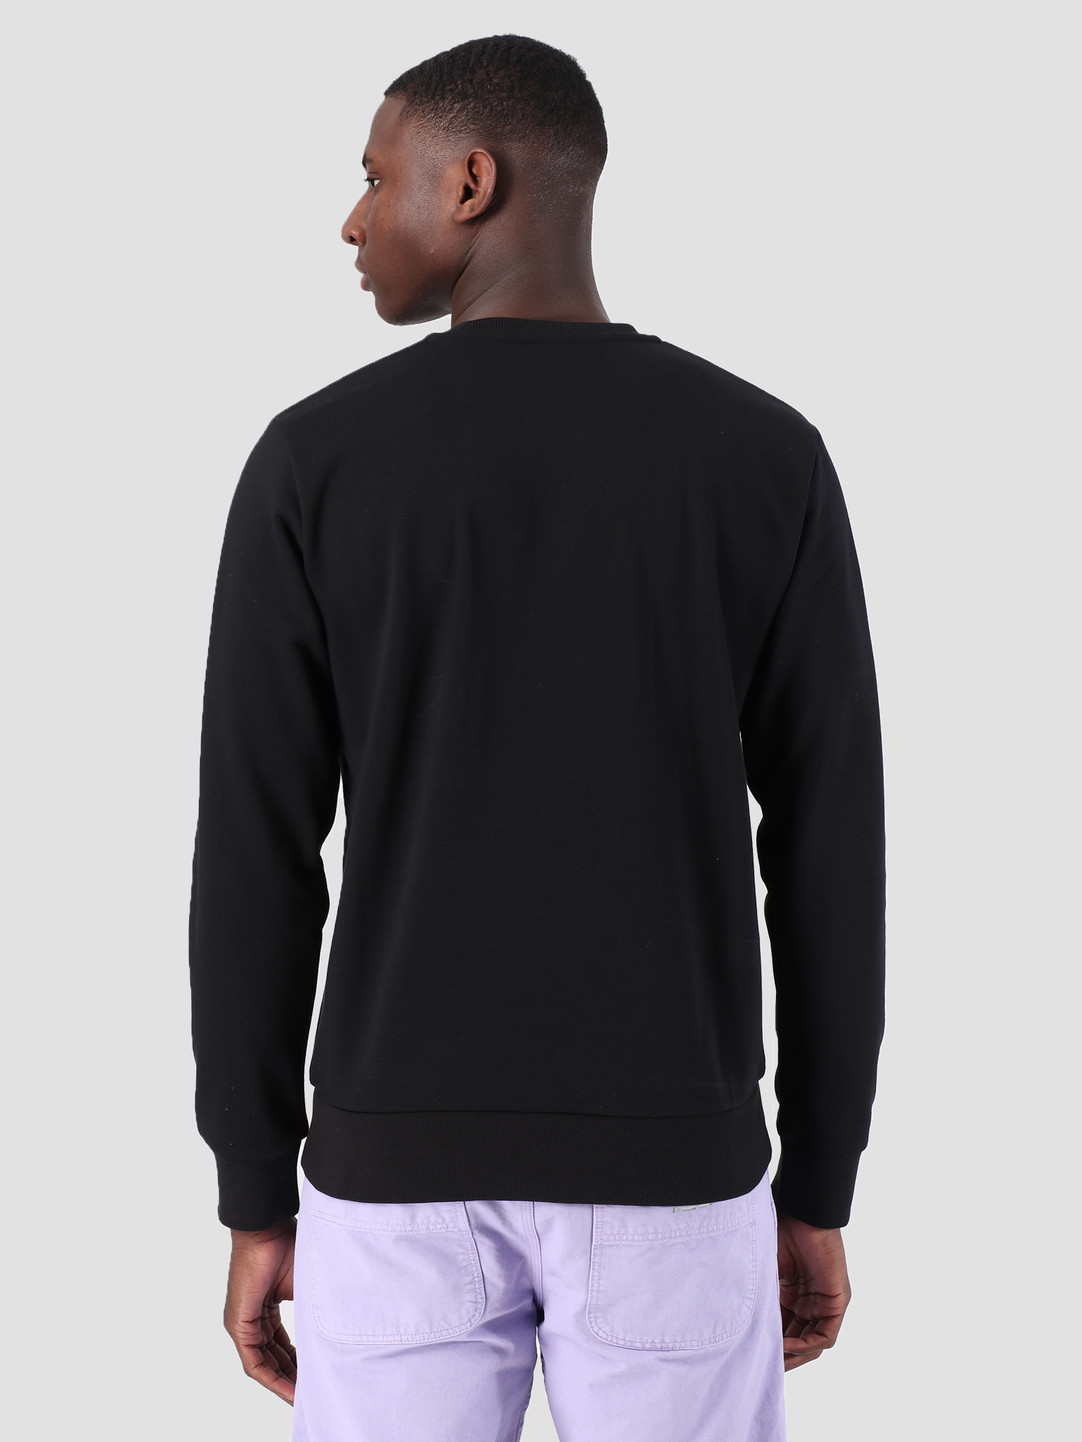 Carhartt WIP Carhartt WIP Script Embroidery Sweat Black White 61102099